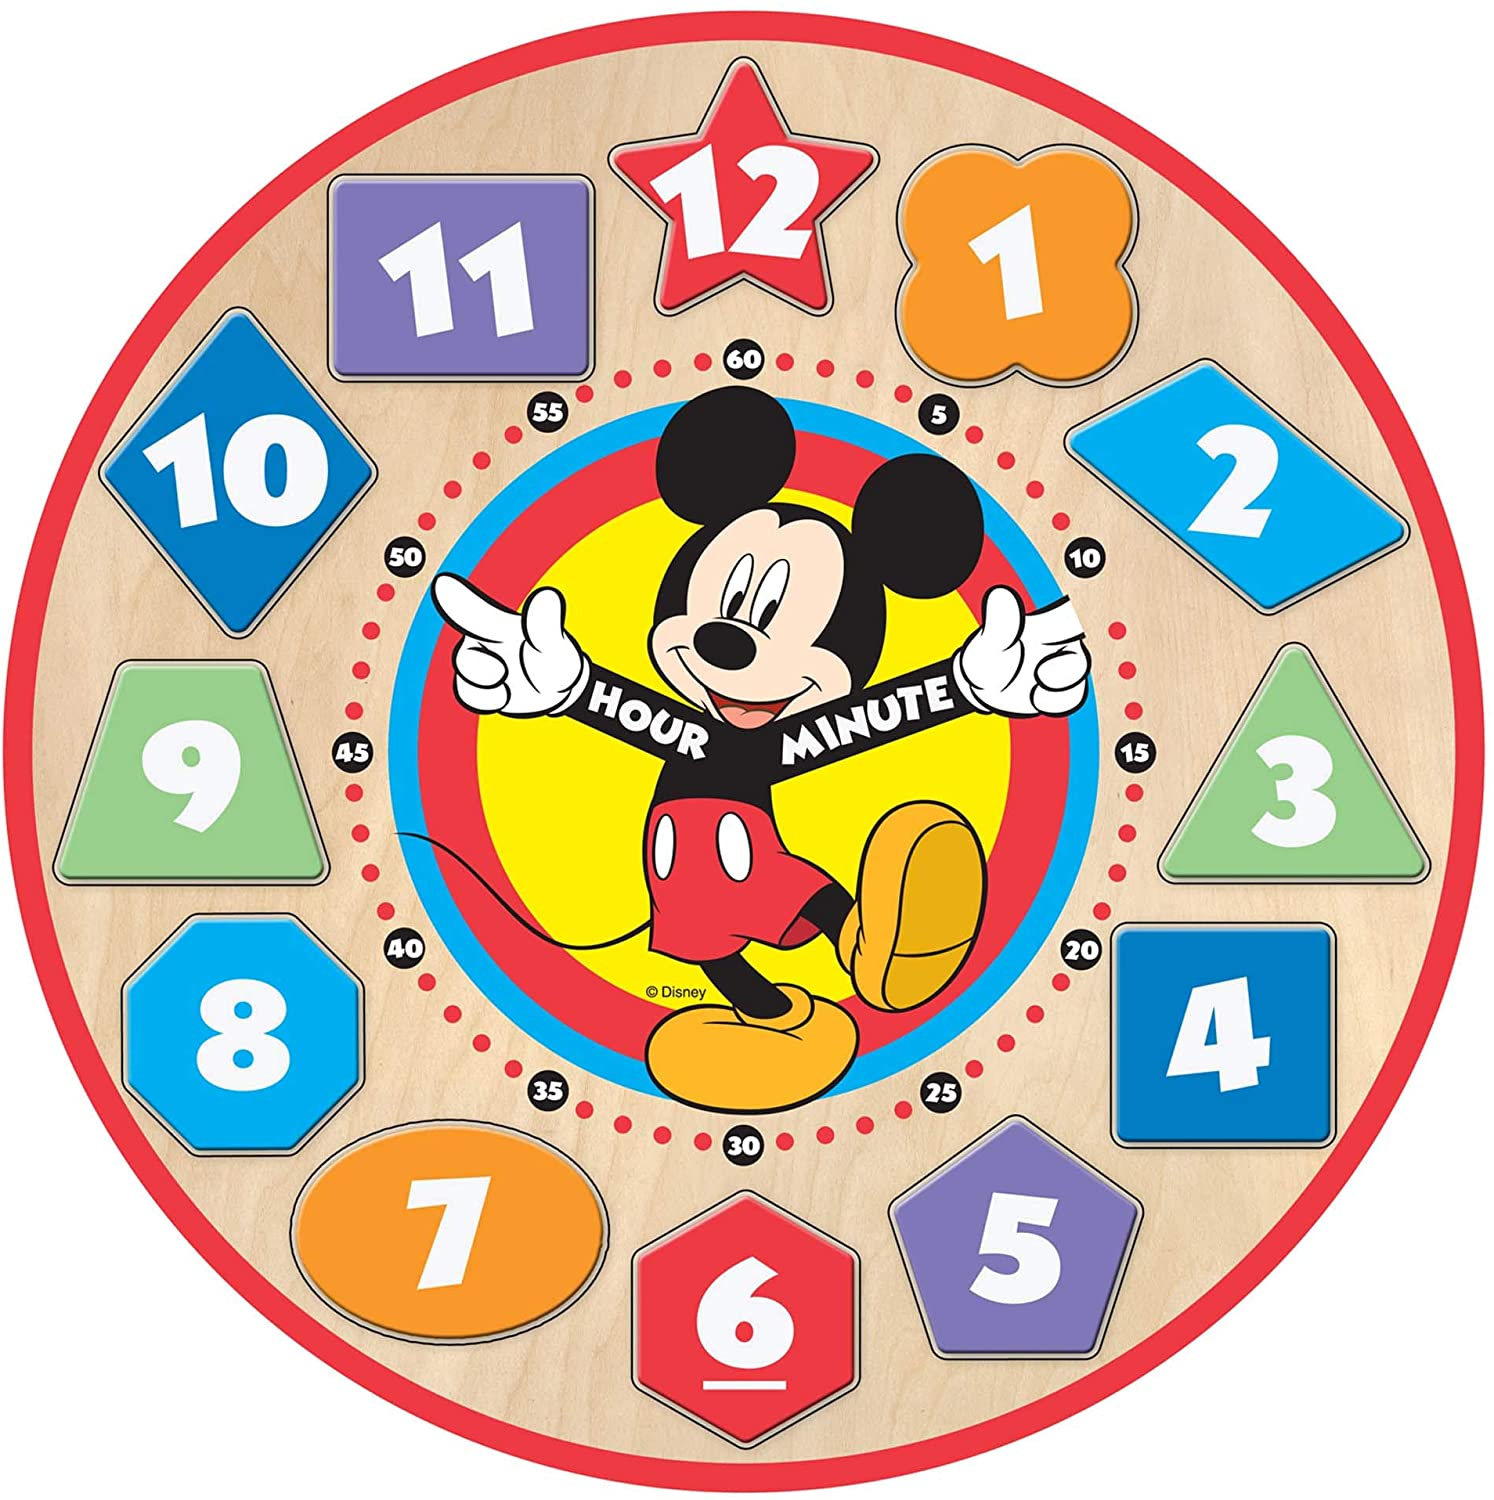 Melissa & Doug - Disney Mickey Mouse Wooden Shape Sorting Clock